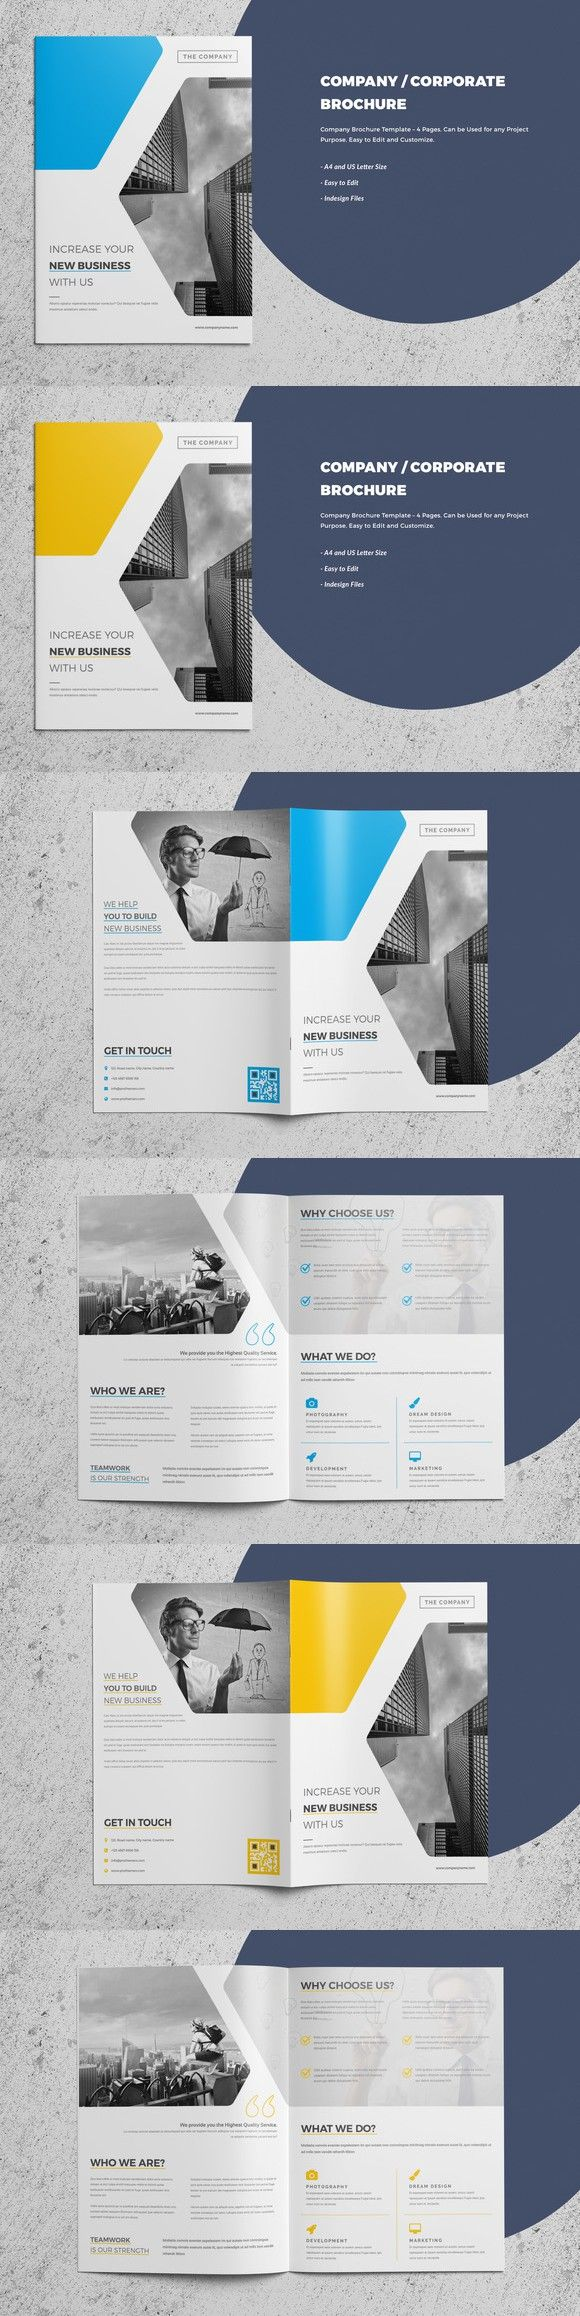 Corporate/Company Brochure - 4 Page. Brochure Templates. $9.00